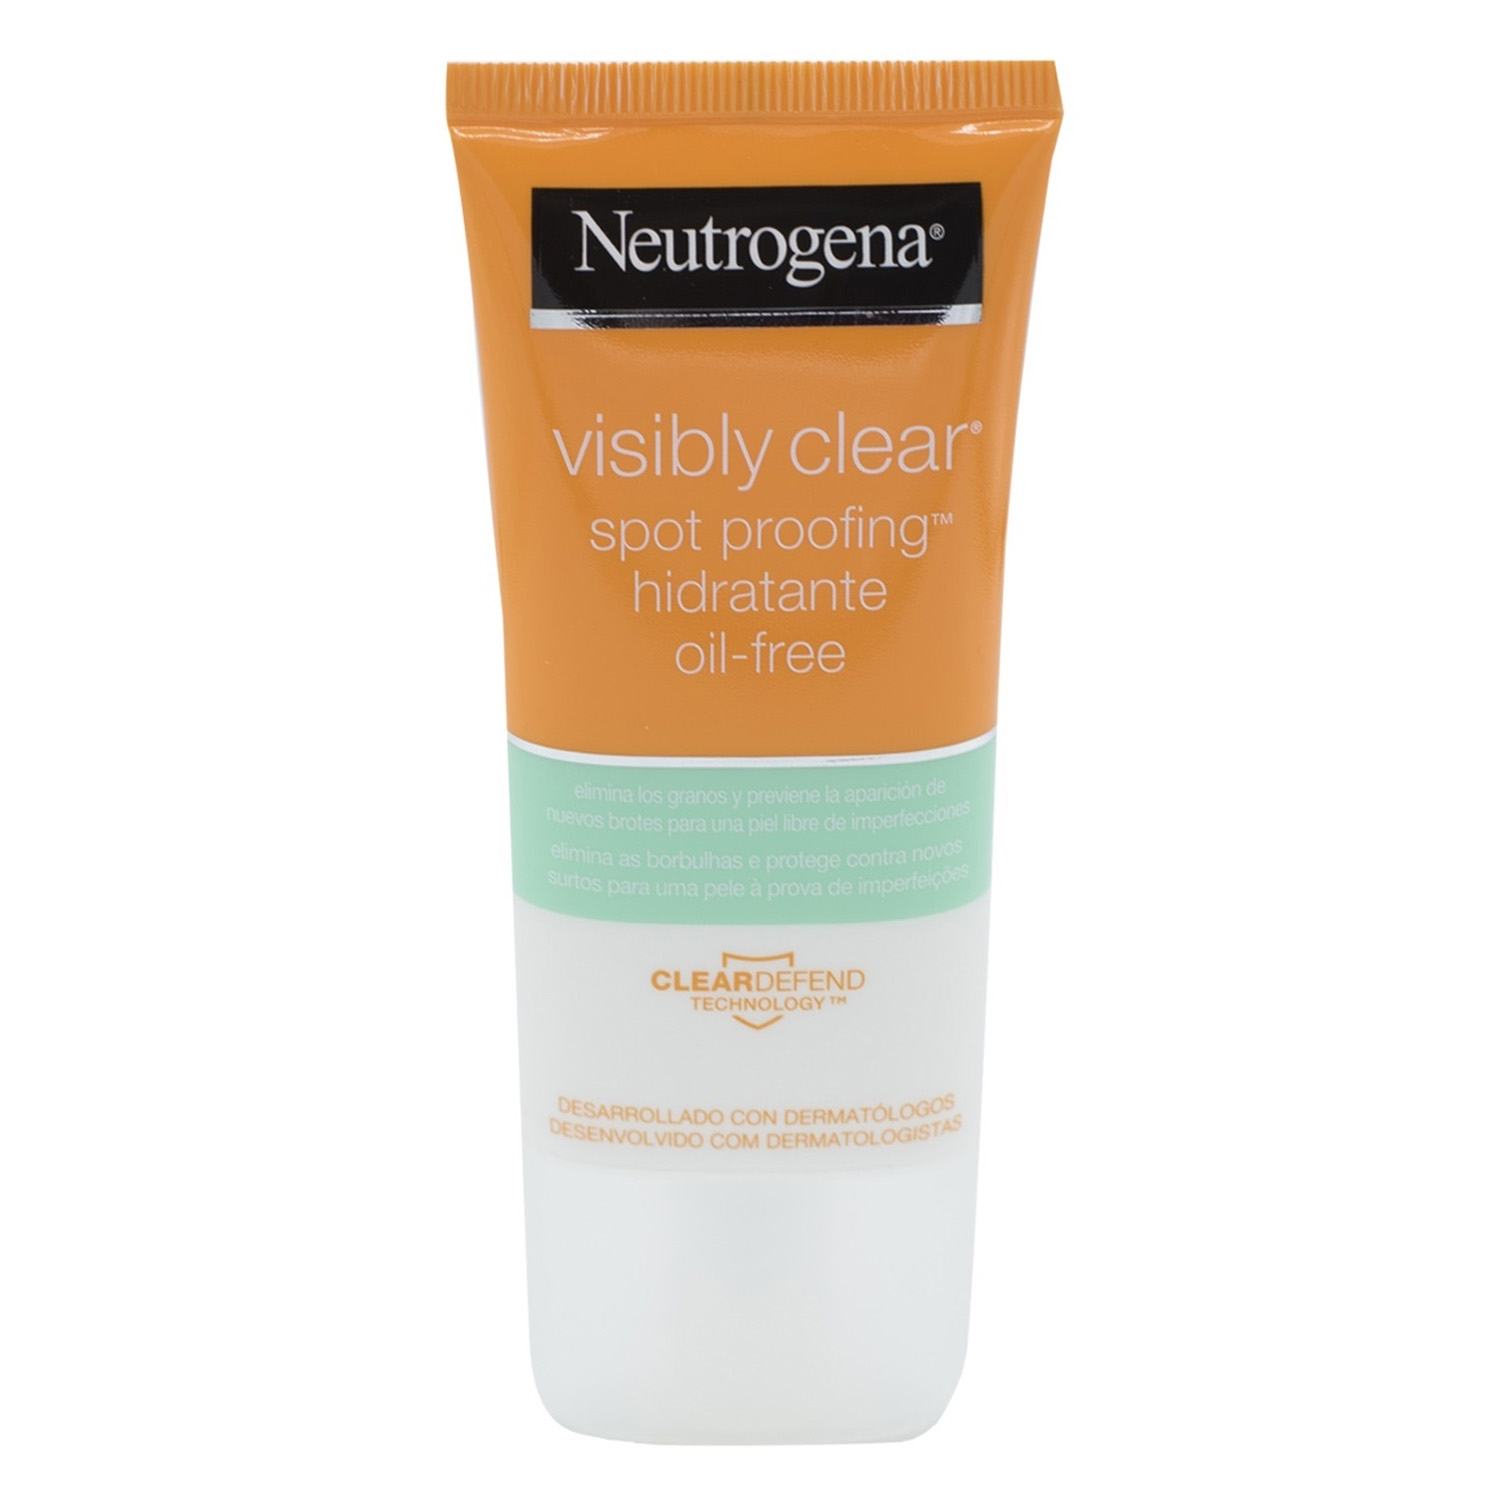 Crema visibly clear spot proofing hidratante oil-free elimina los granos Clear Defend Technology